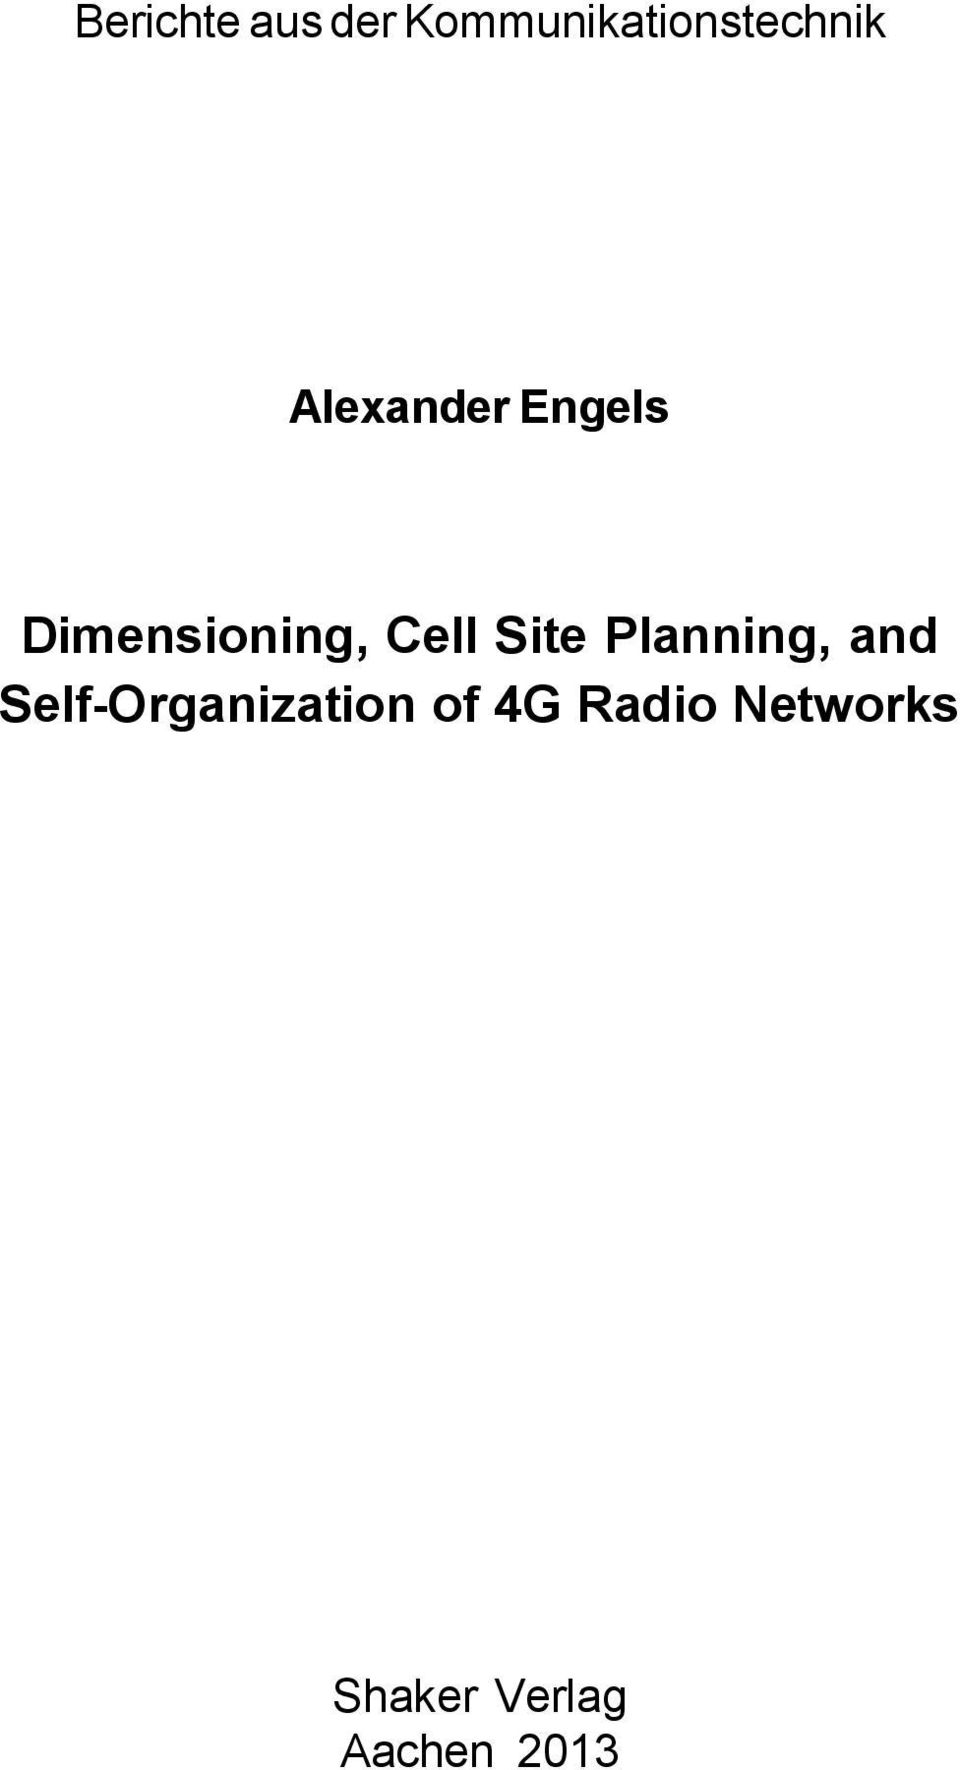 Alexander Engels Dimensioning, Cell Site